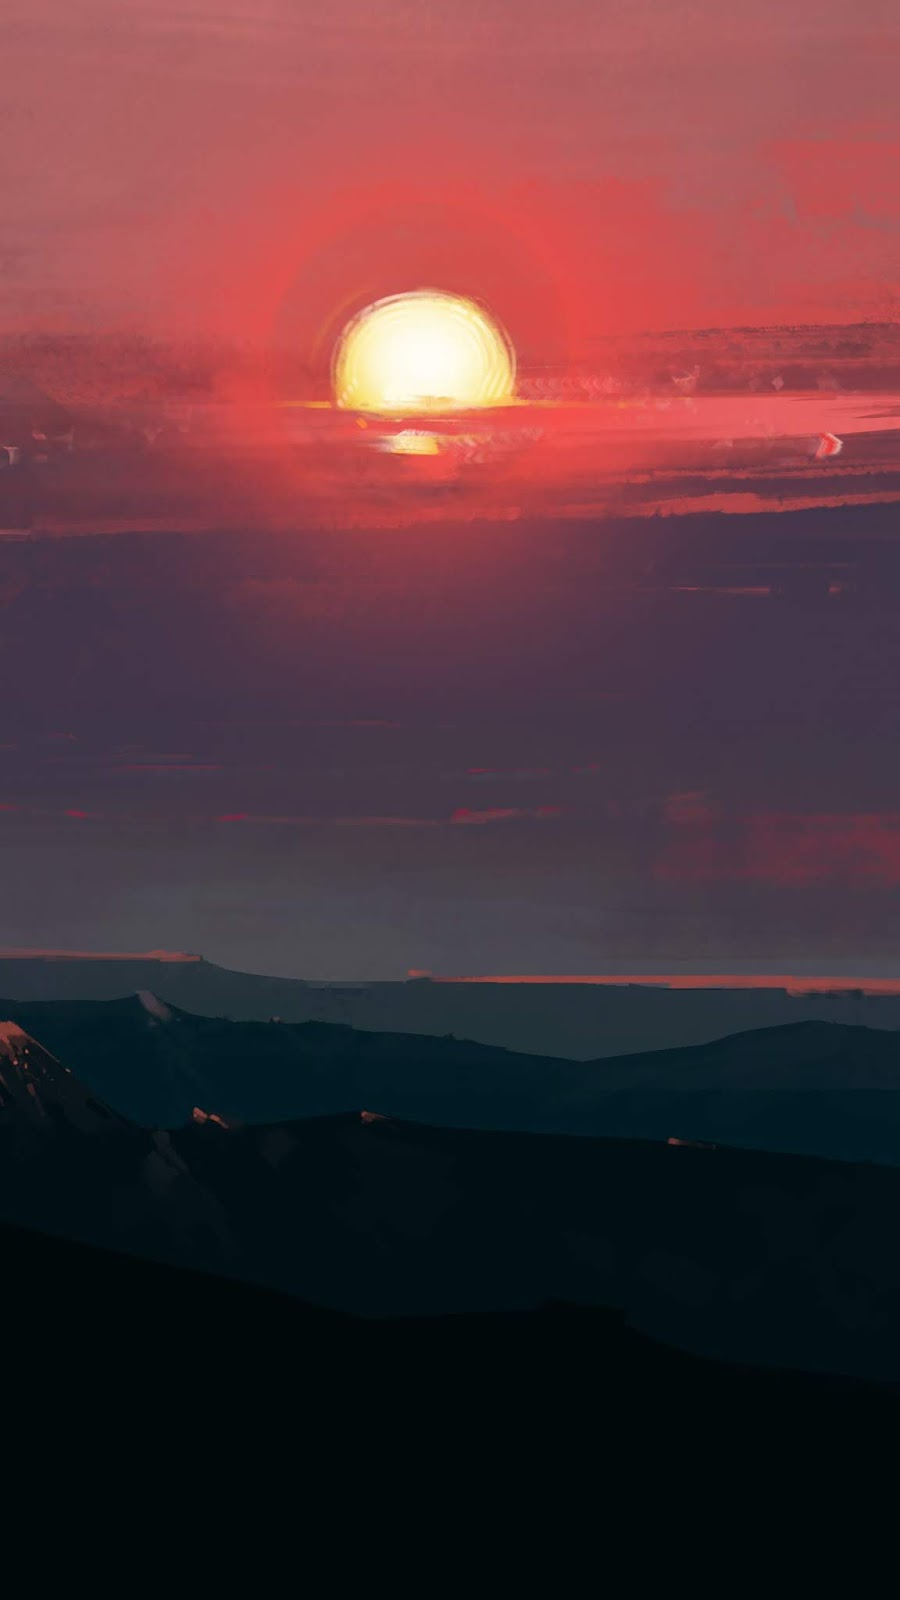 Mountains Sunset wallpaper android